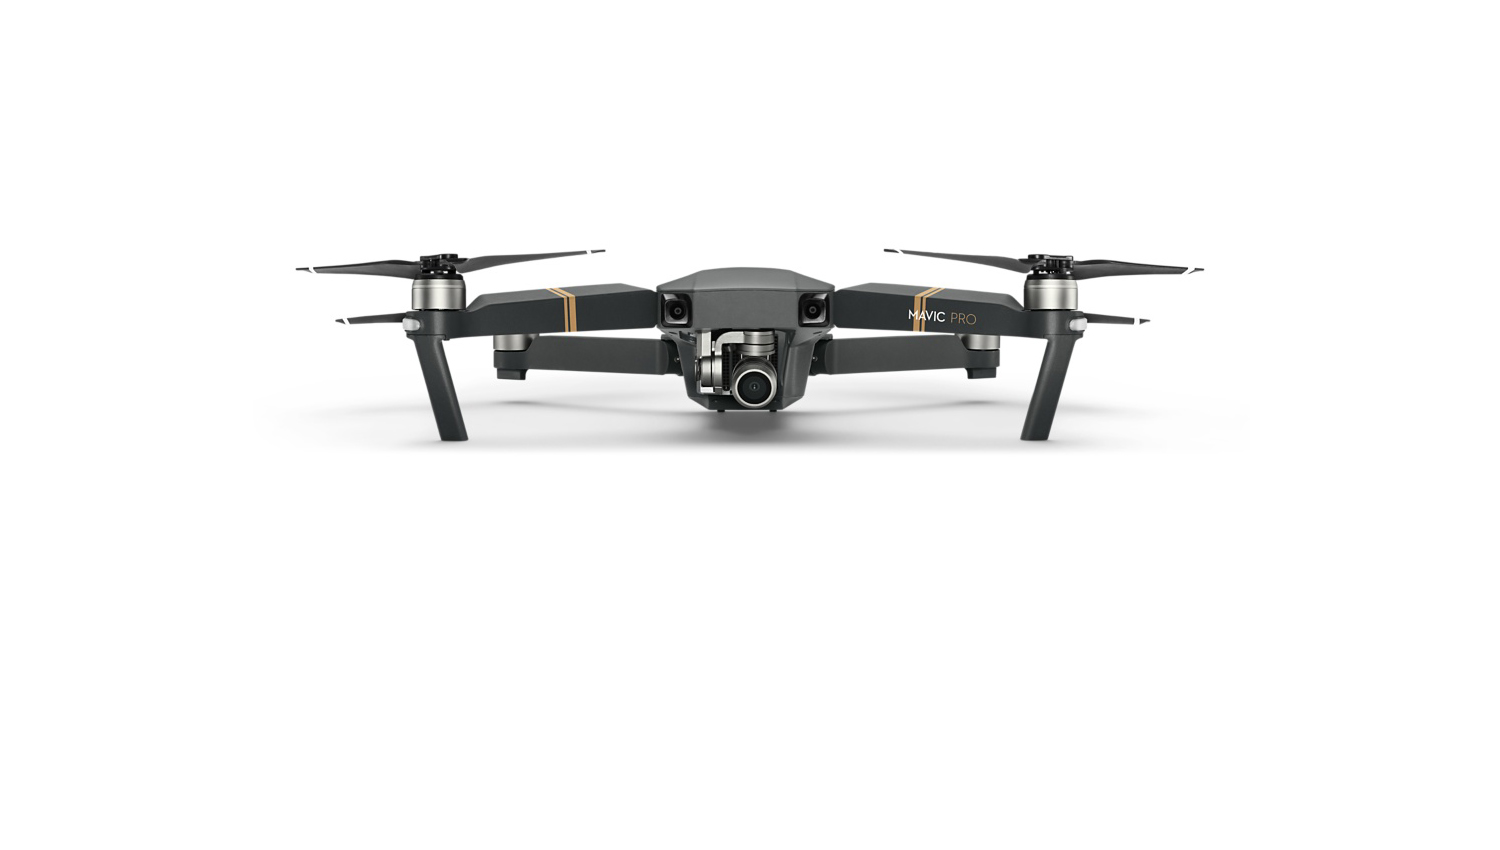 phantom drone price with Dji Mavic Pro Is Lit Af on Drones Sale  parison Table as well Xiaomi Mi Drone in addition dji moreover A Review Of The Dji T600 1 Quadcopter With 4k Video Camera With Dual Controllers besides Rise Of The Drone Cameras.